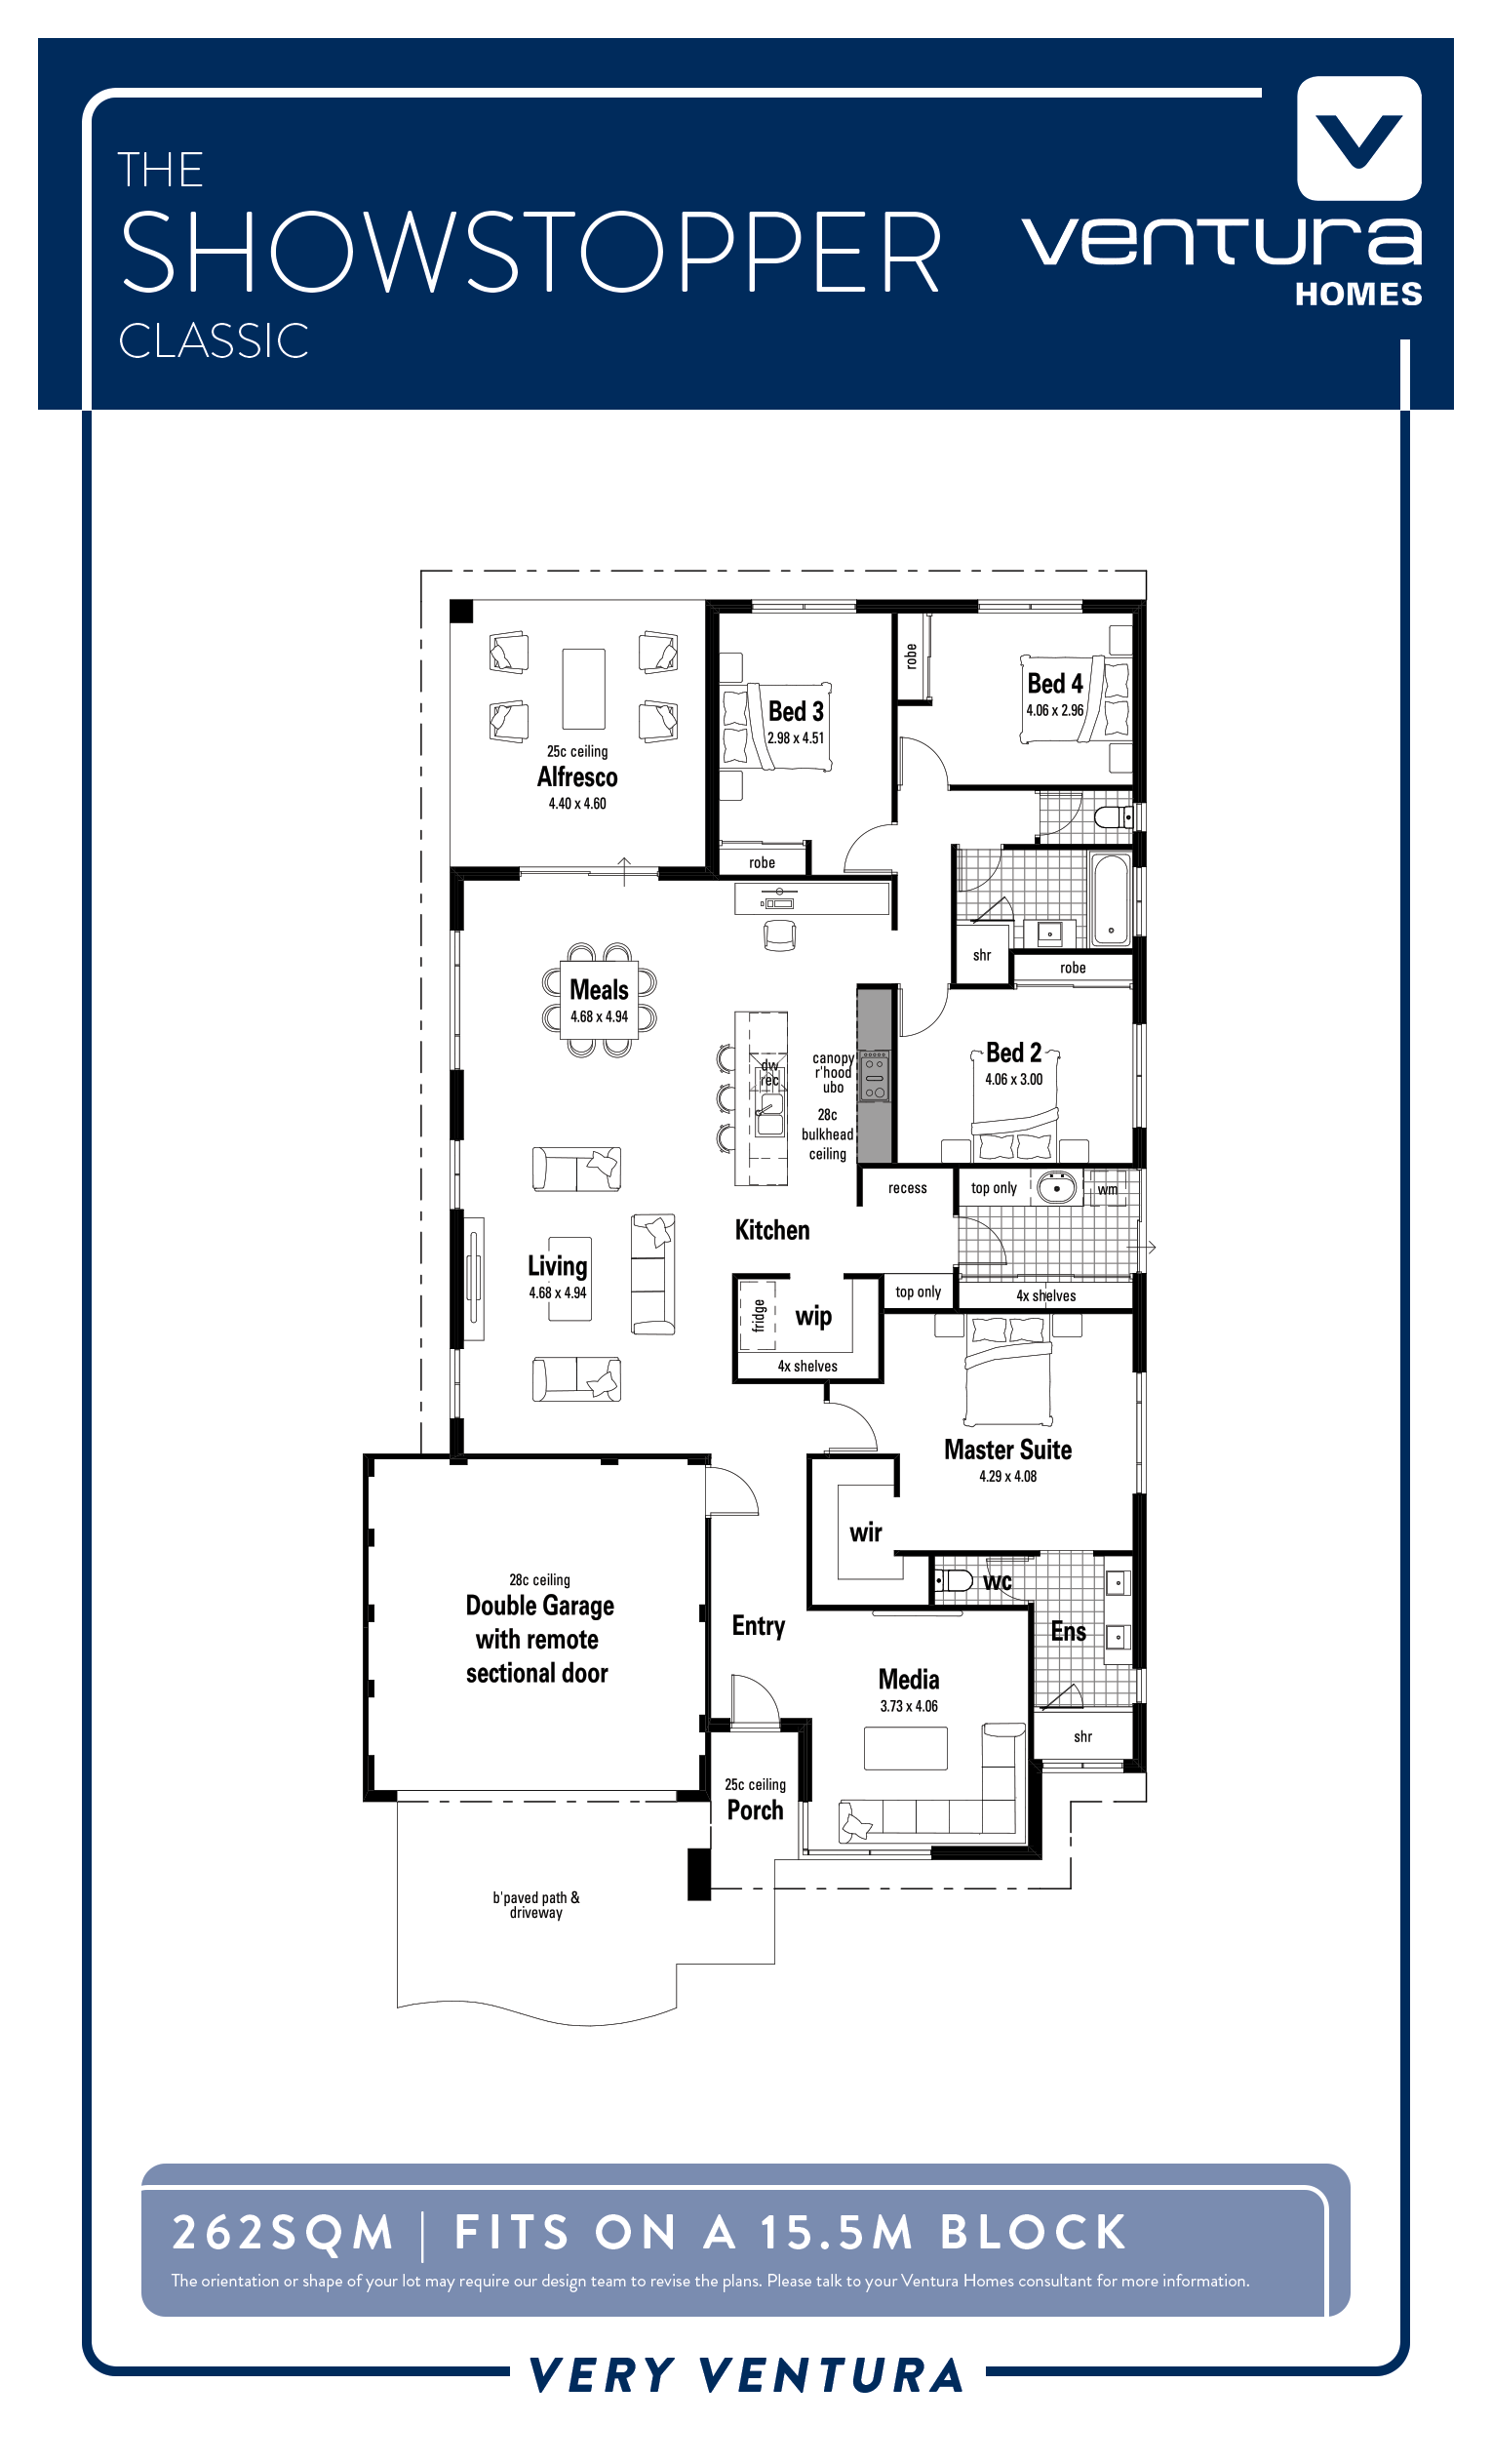 The Showstopper A Stunning Home Design By Ventura Homes Home Design Floor Plans Ventura Homes House Design